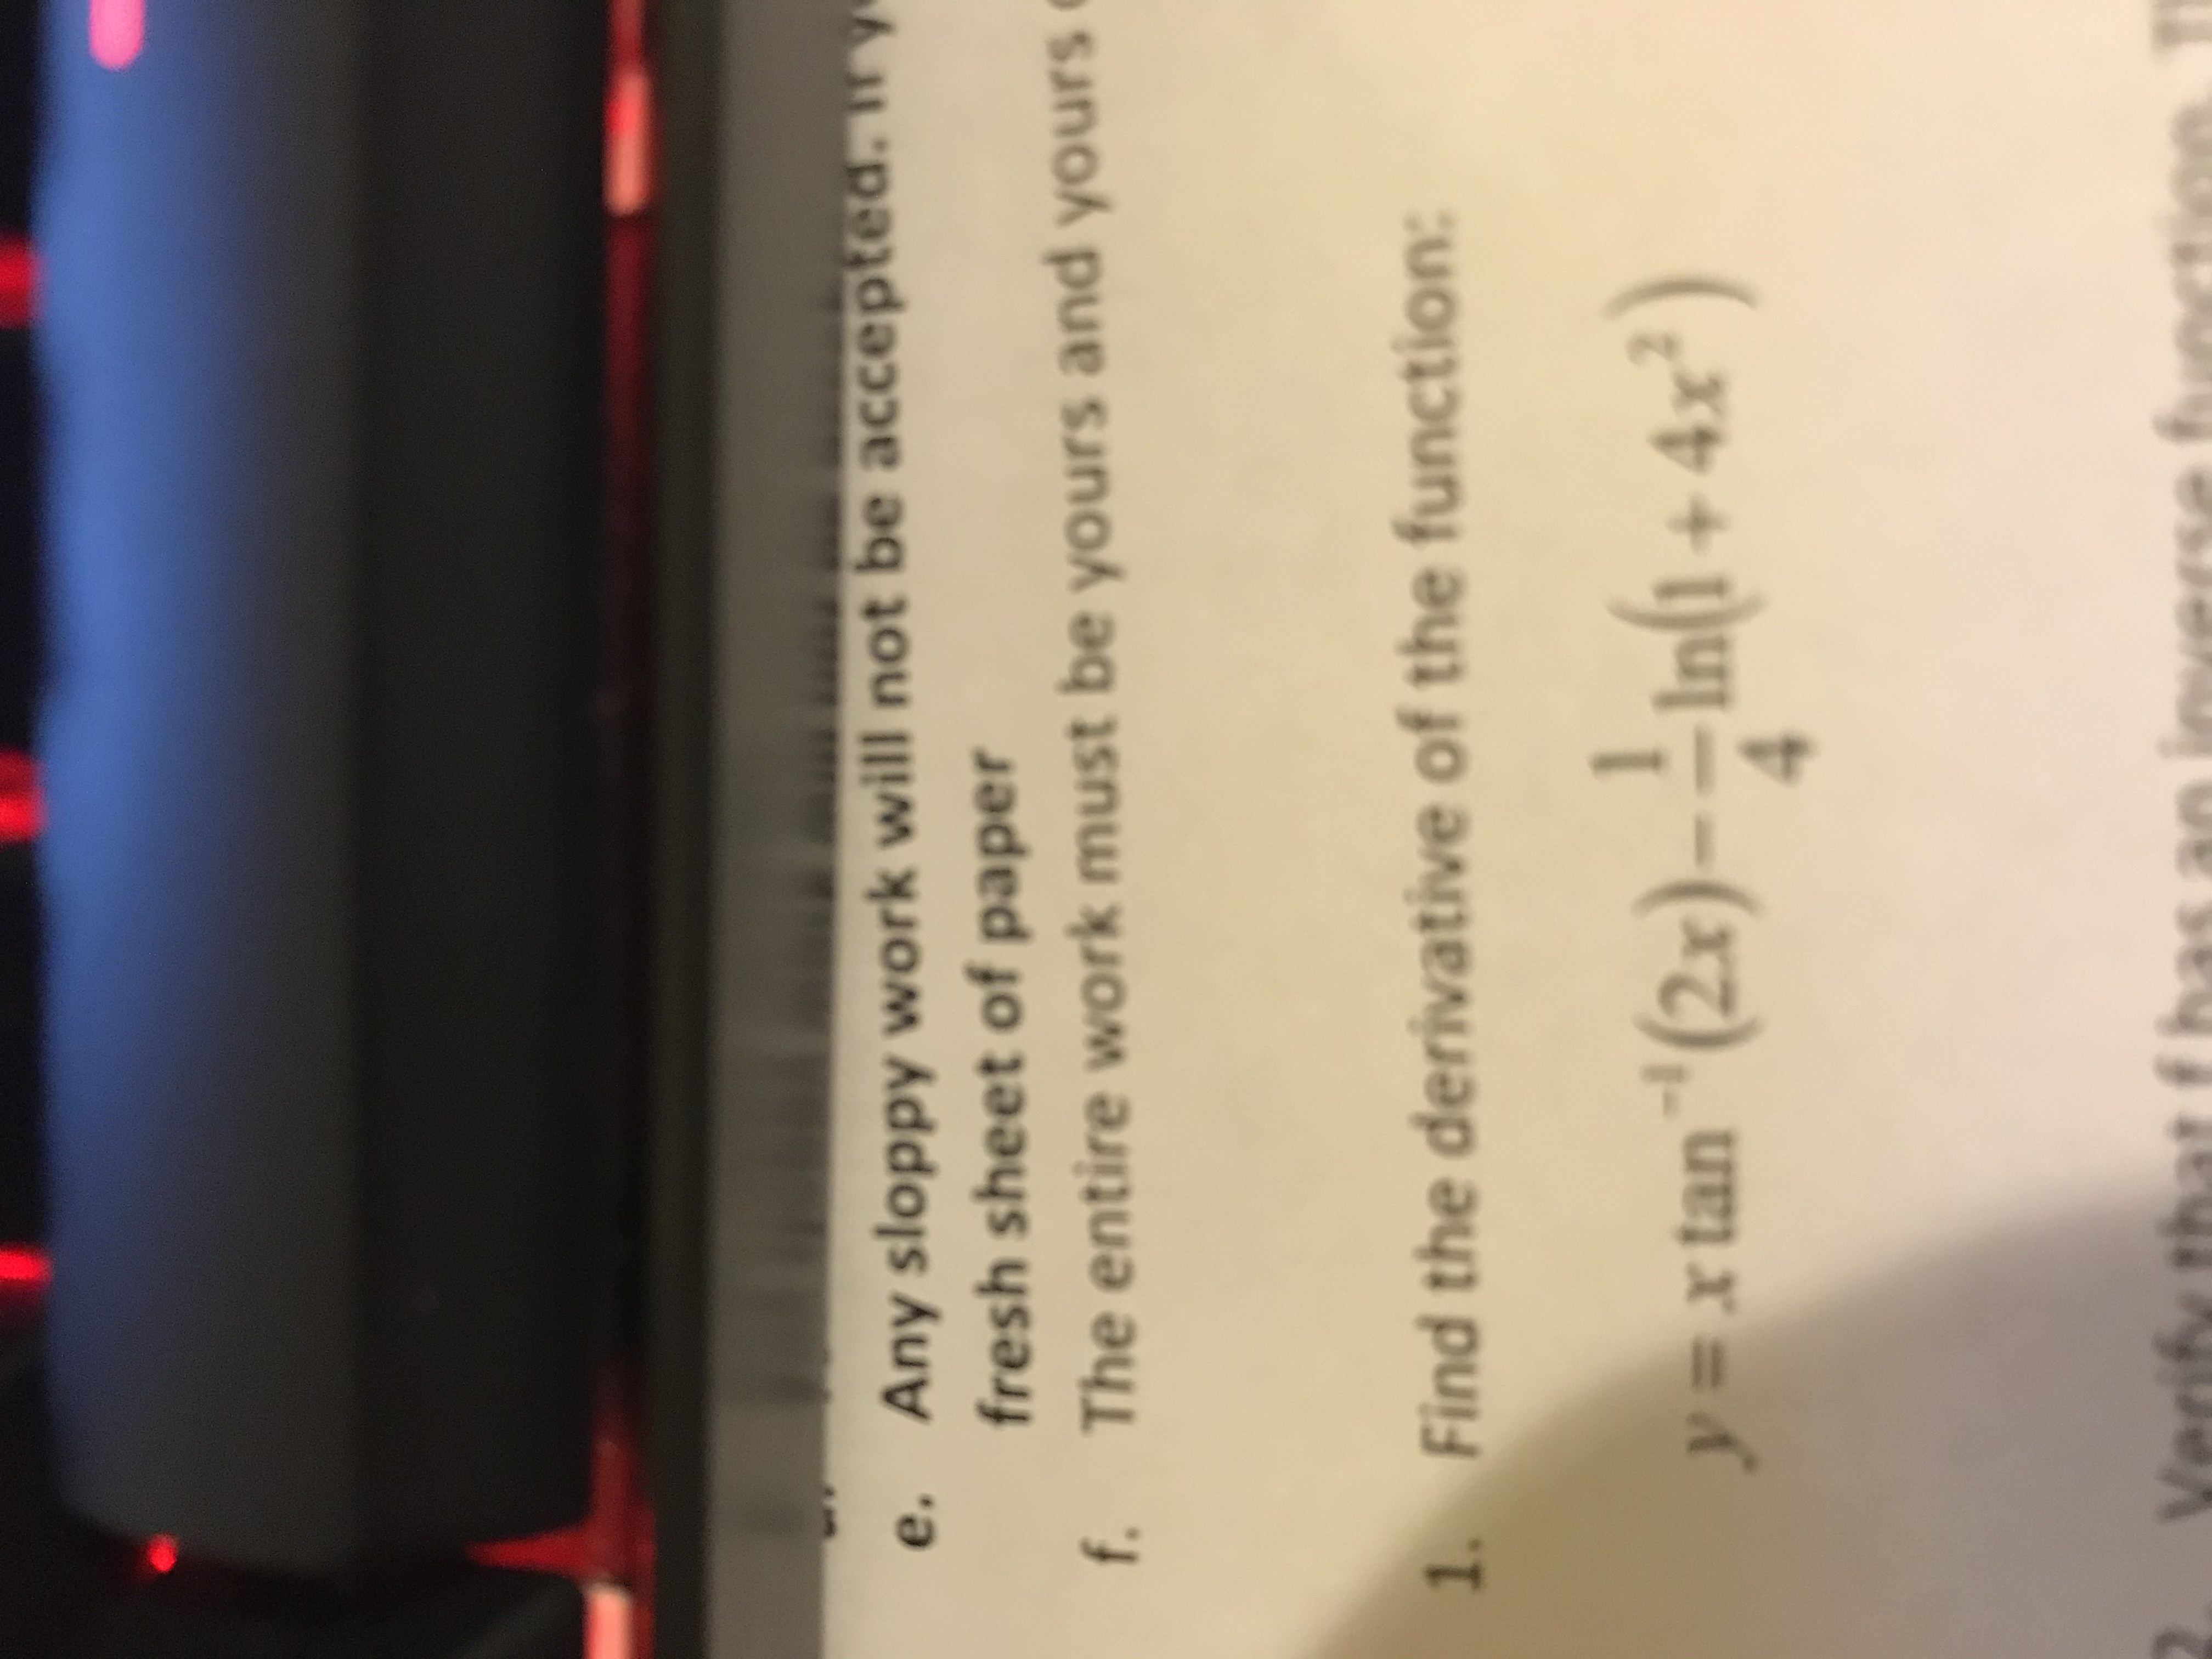 """Any sloppy work will not be accepted. fresh sheet of paper e. The entire work must be yours and yours f. Find the derivative of the function: 1. Infi+ 4x) y=x tan""""(2x)- Verify th"""